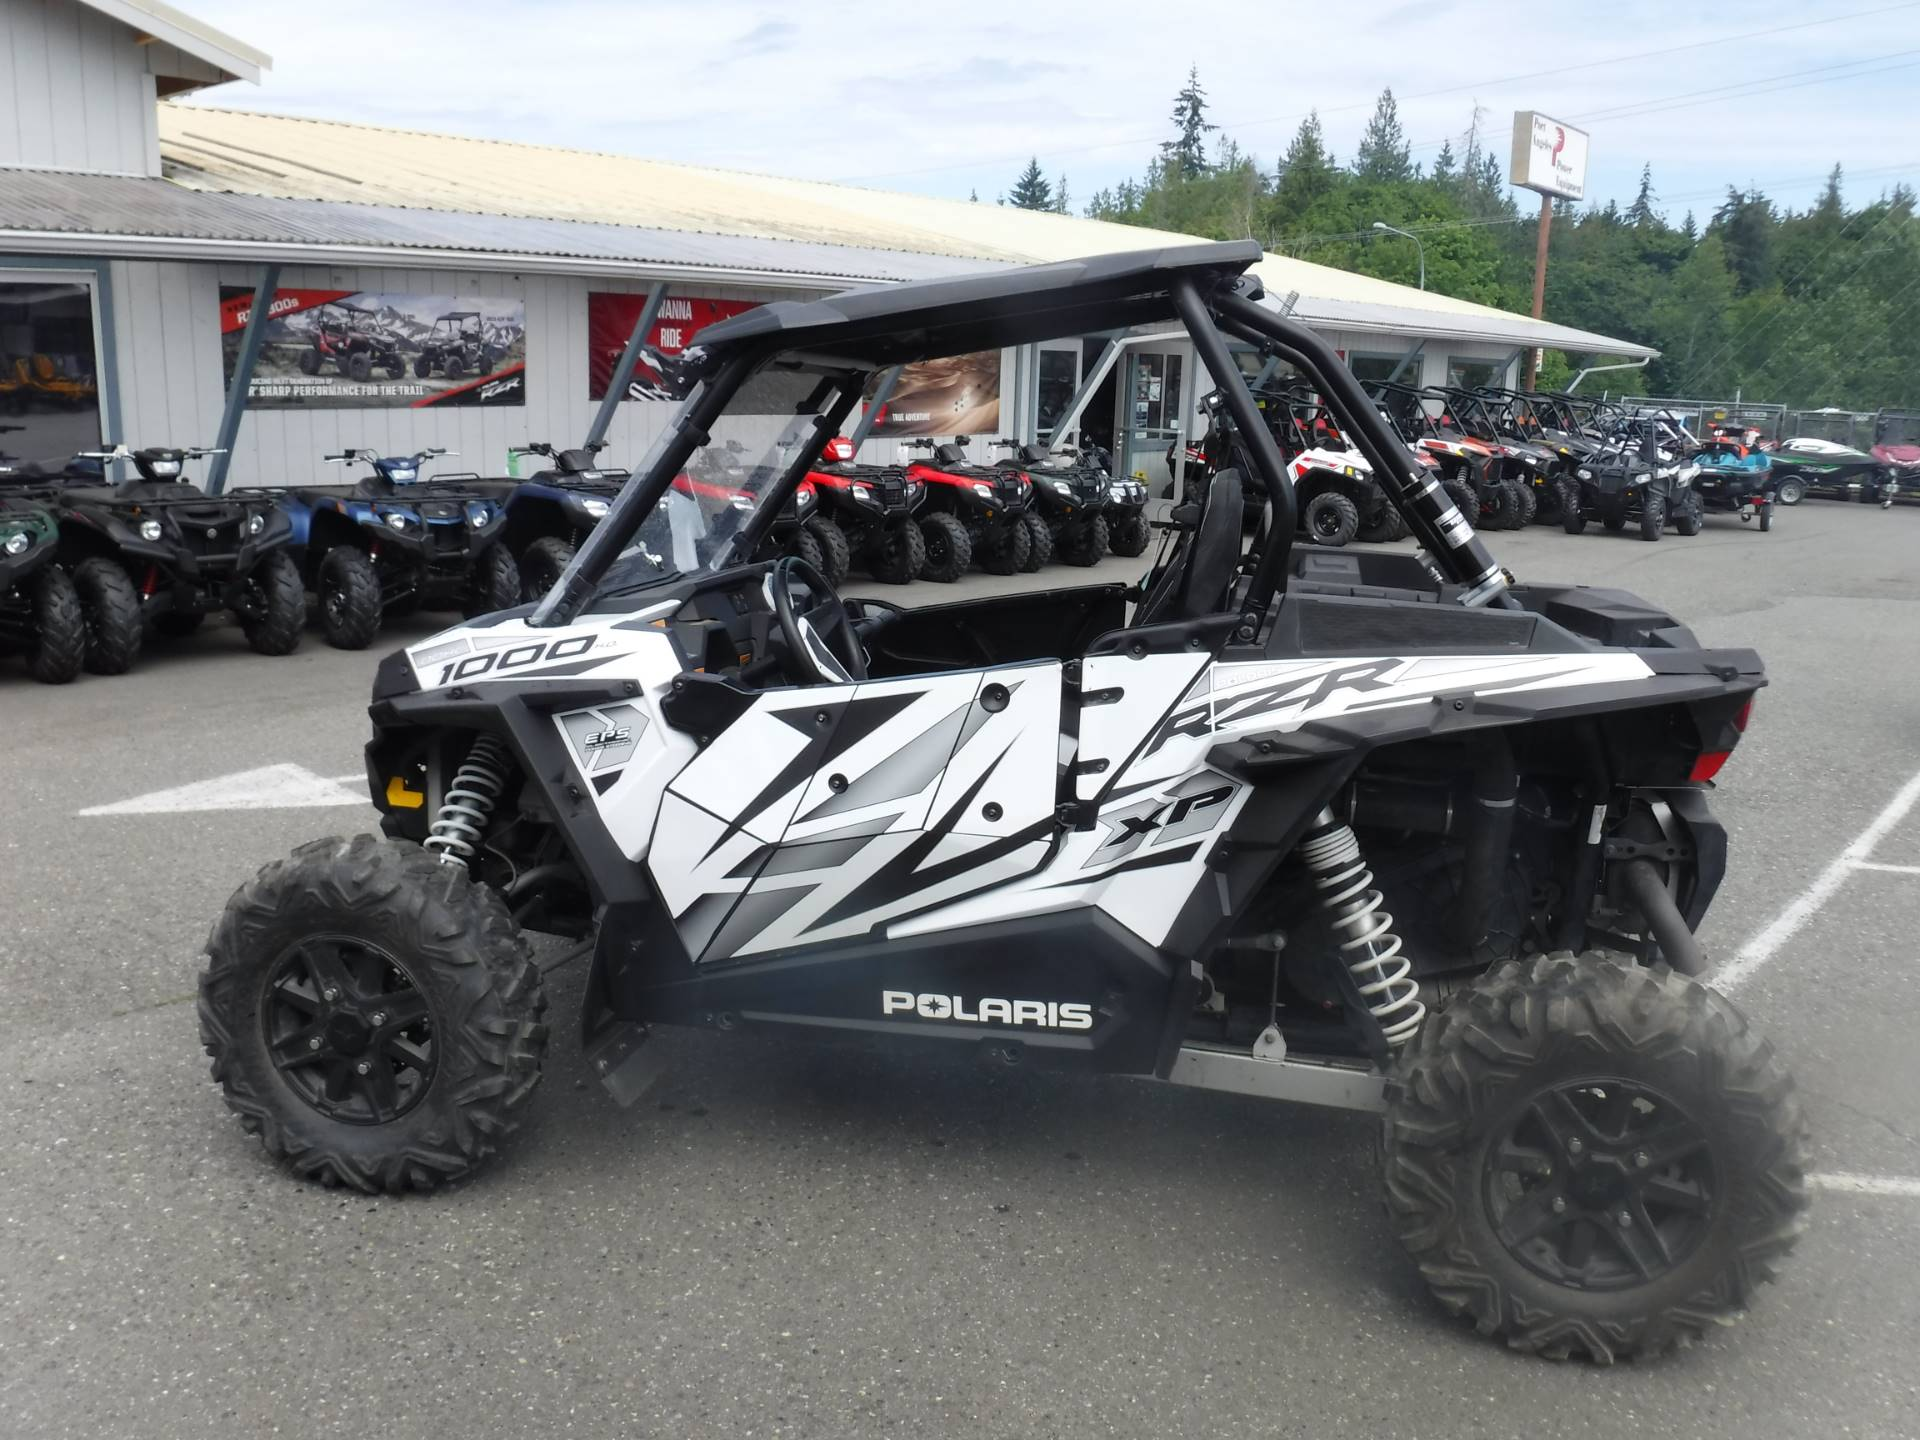 2015 Polaris RZR® XP 1000 EPS in Port Angeles, Washington - Photo 1